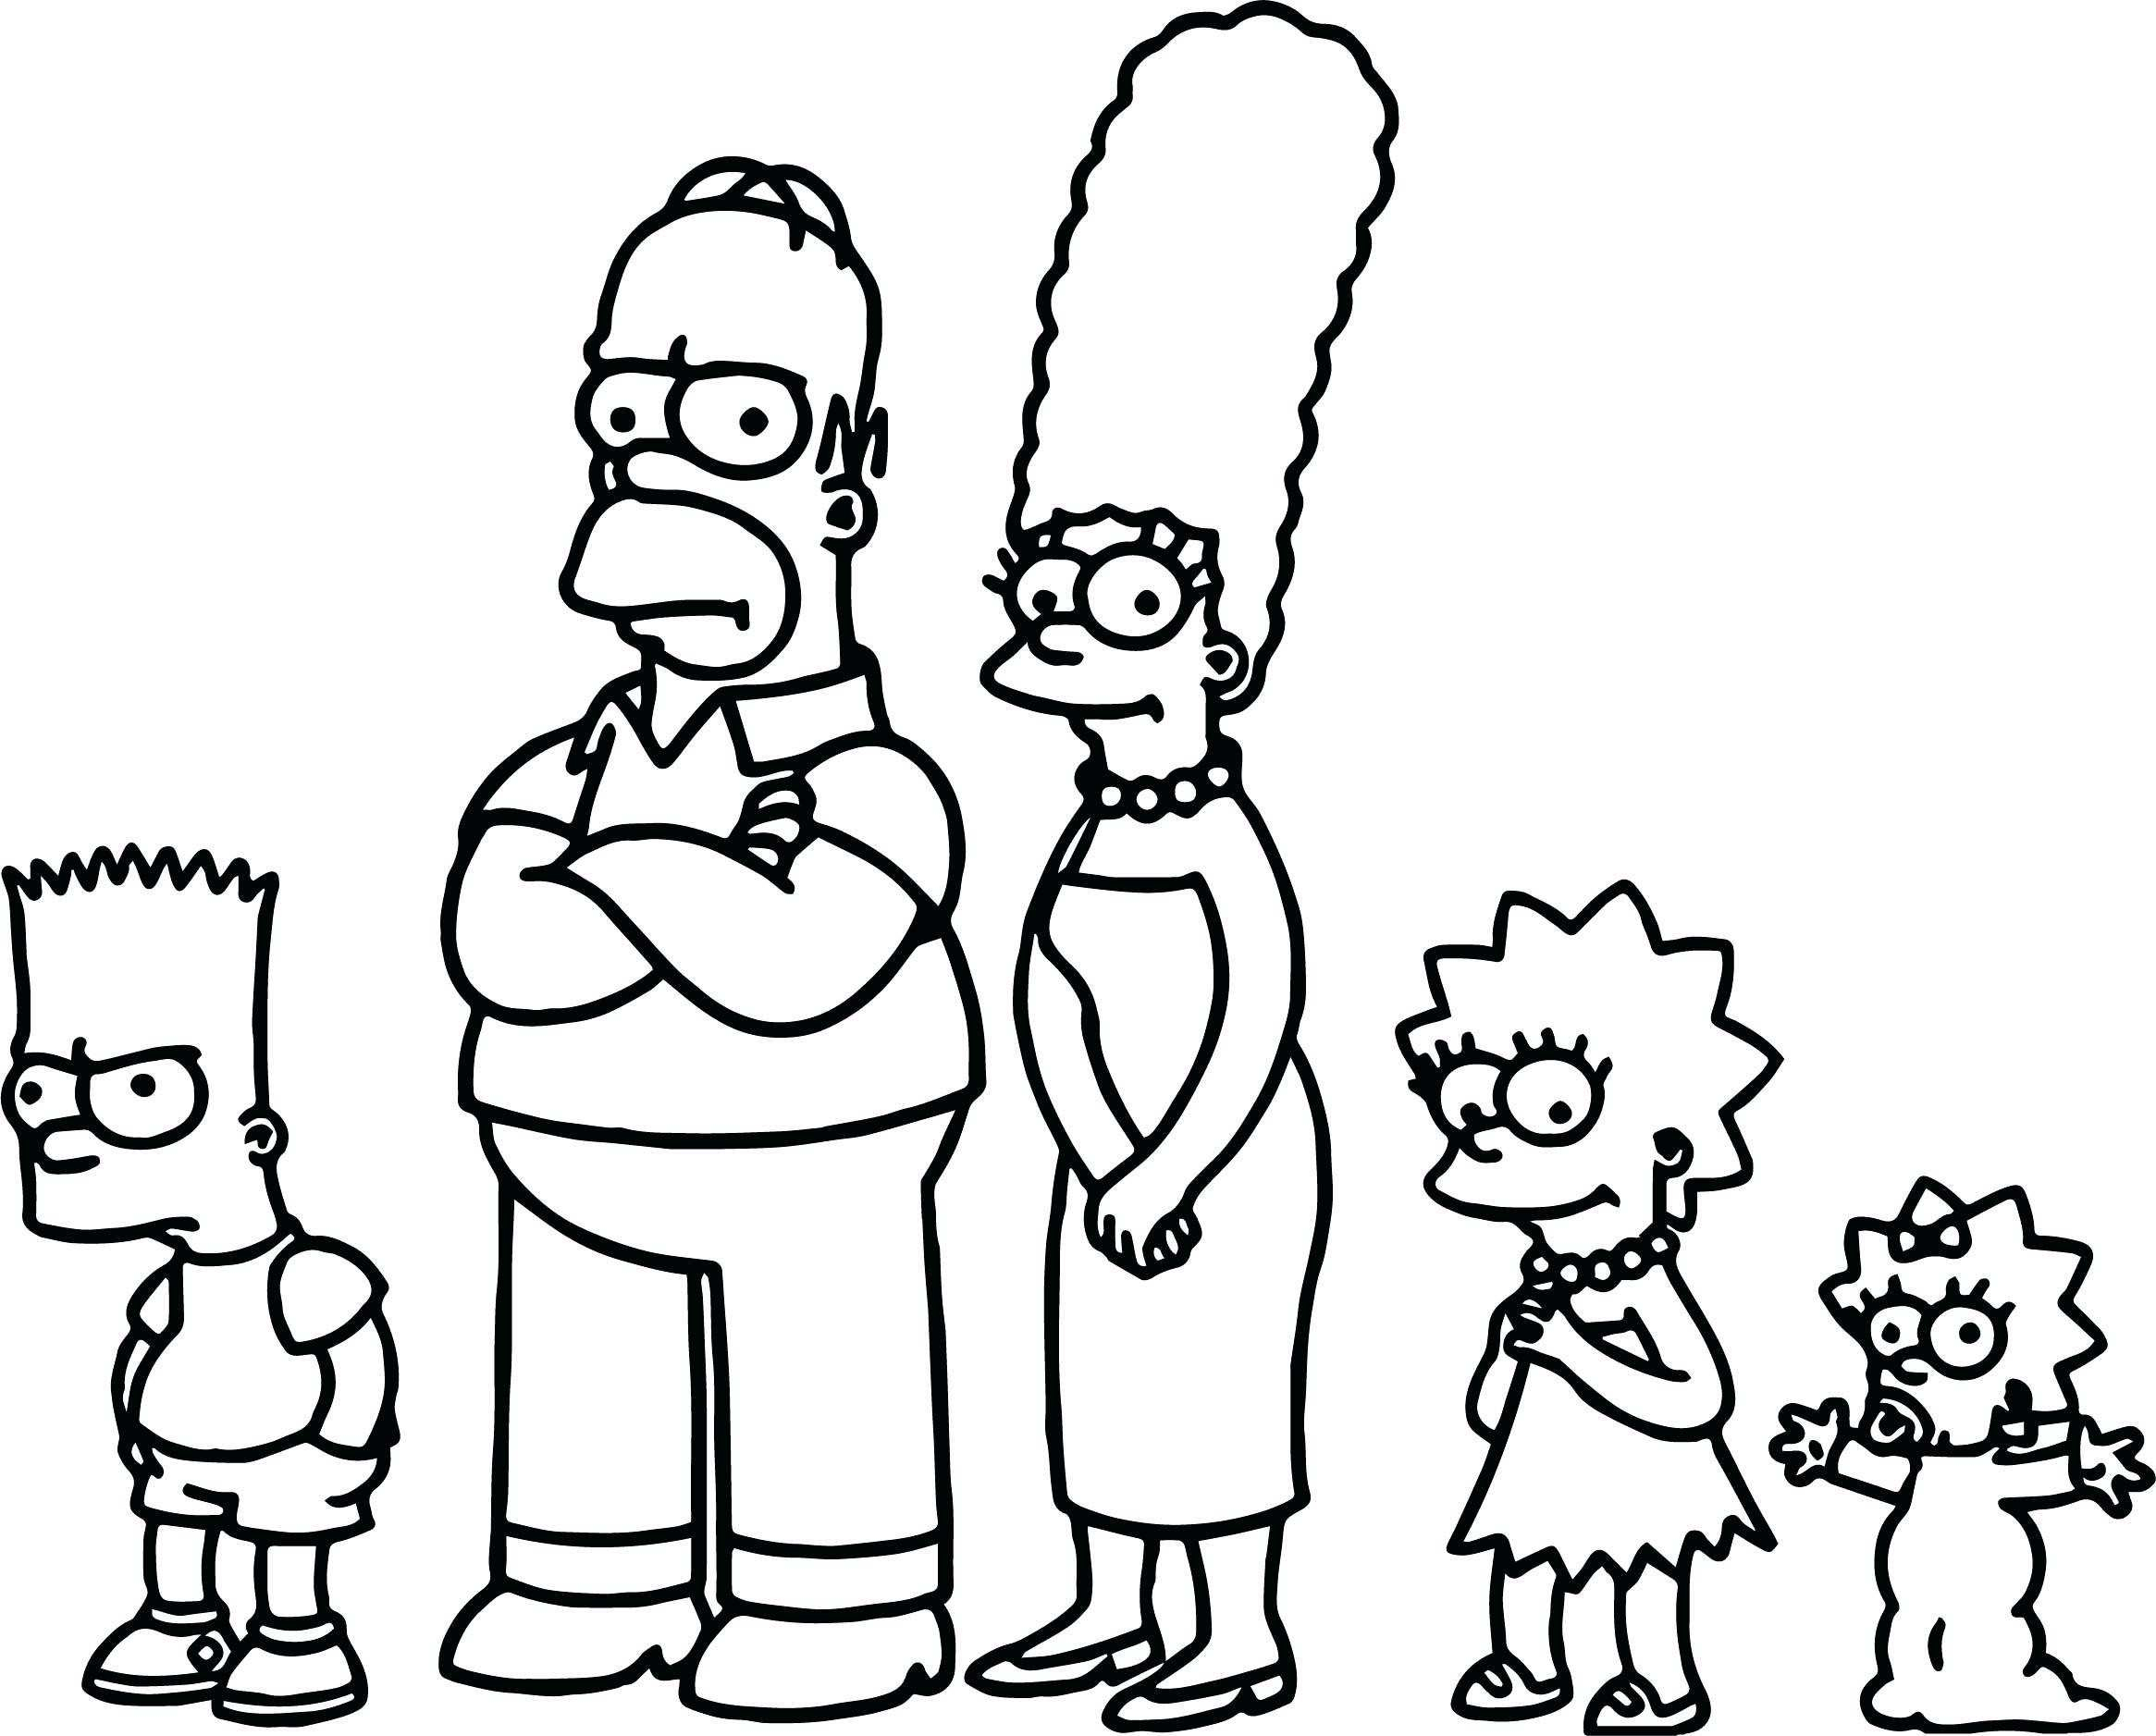 The Simpsons Coloring Pages The Simpsons Coloring Pages Monesmapyrene